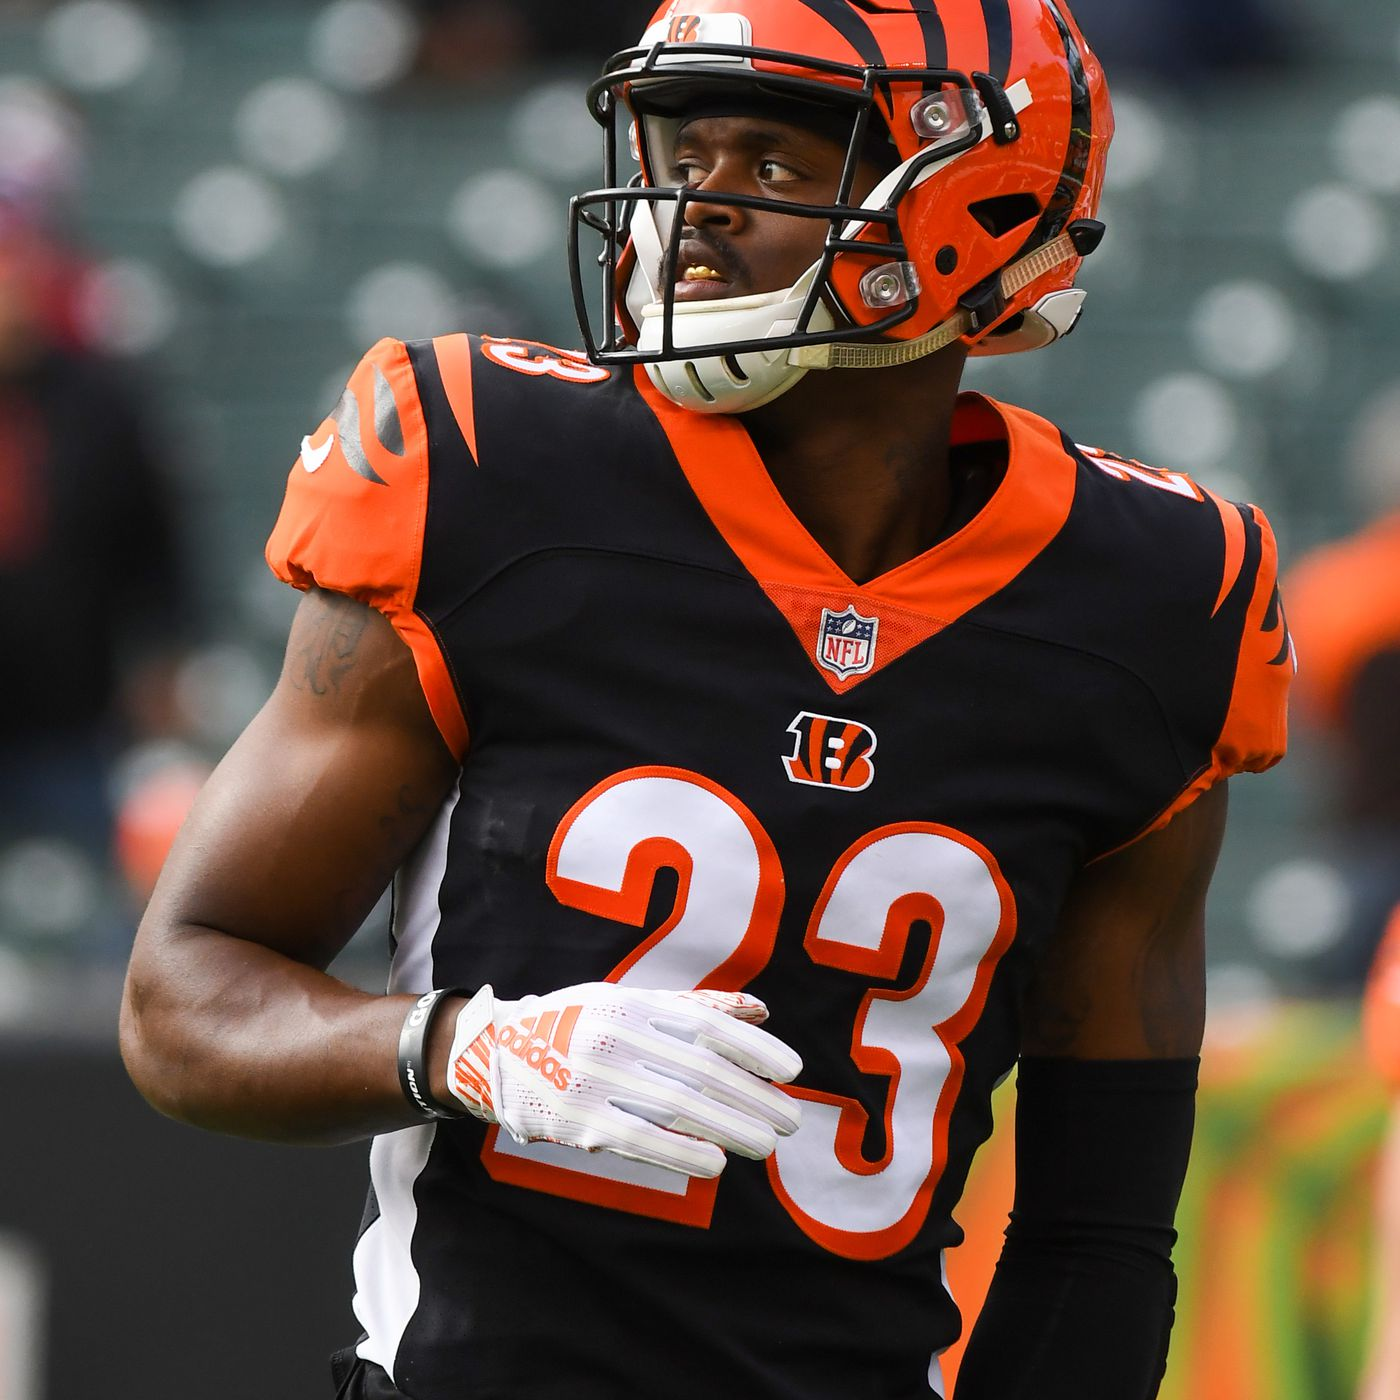 on sale 5593c 976c6 Darius Phillips given superlative marks by PFF - Cincy Jungle